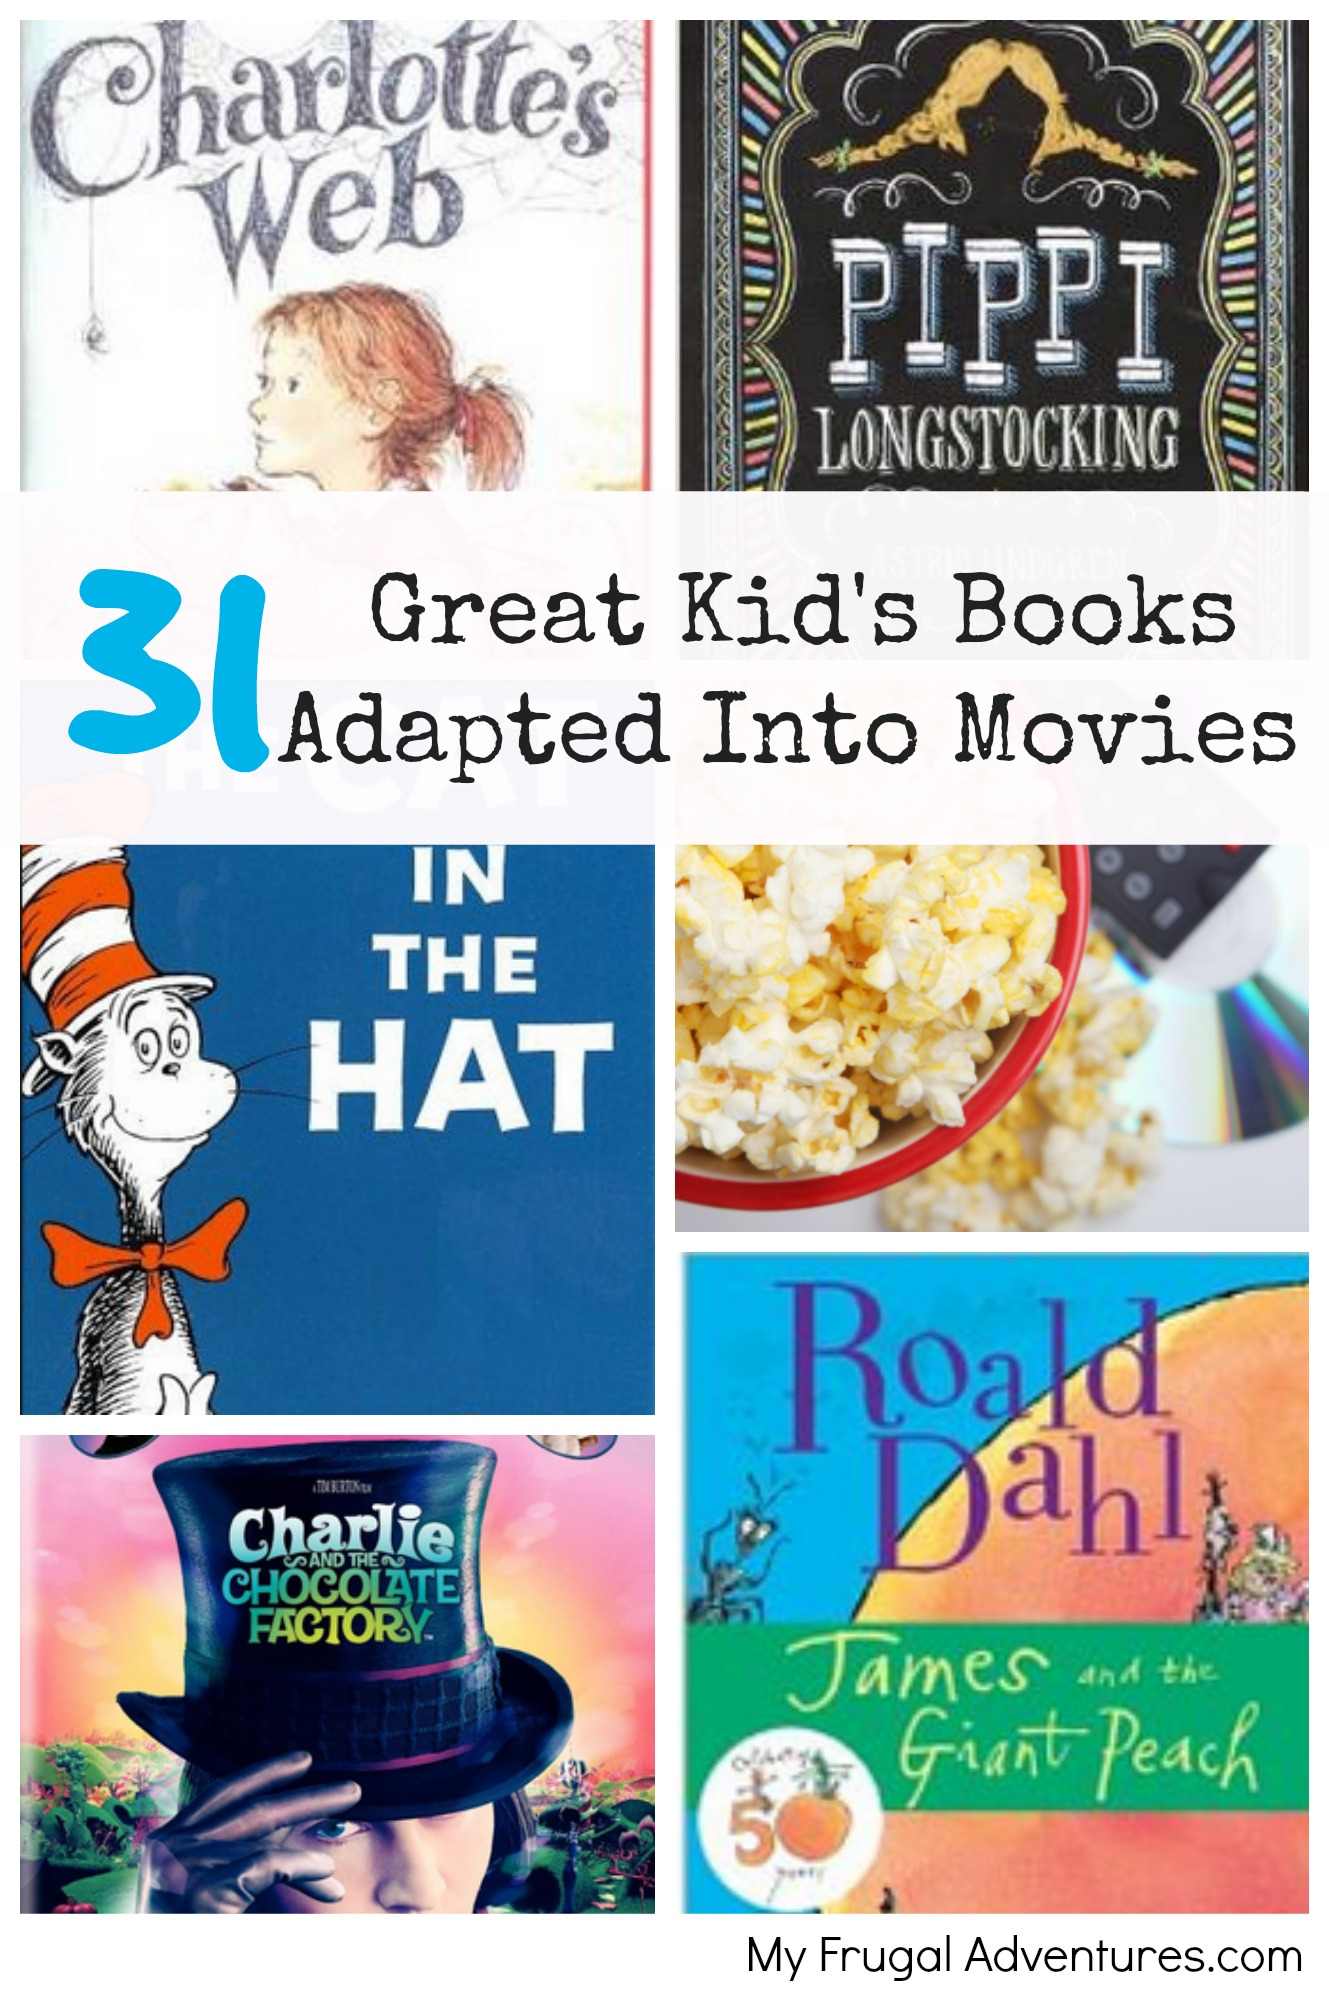 31 Great Kid's Books Adapted Into Movies - My Frugal Adventures